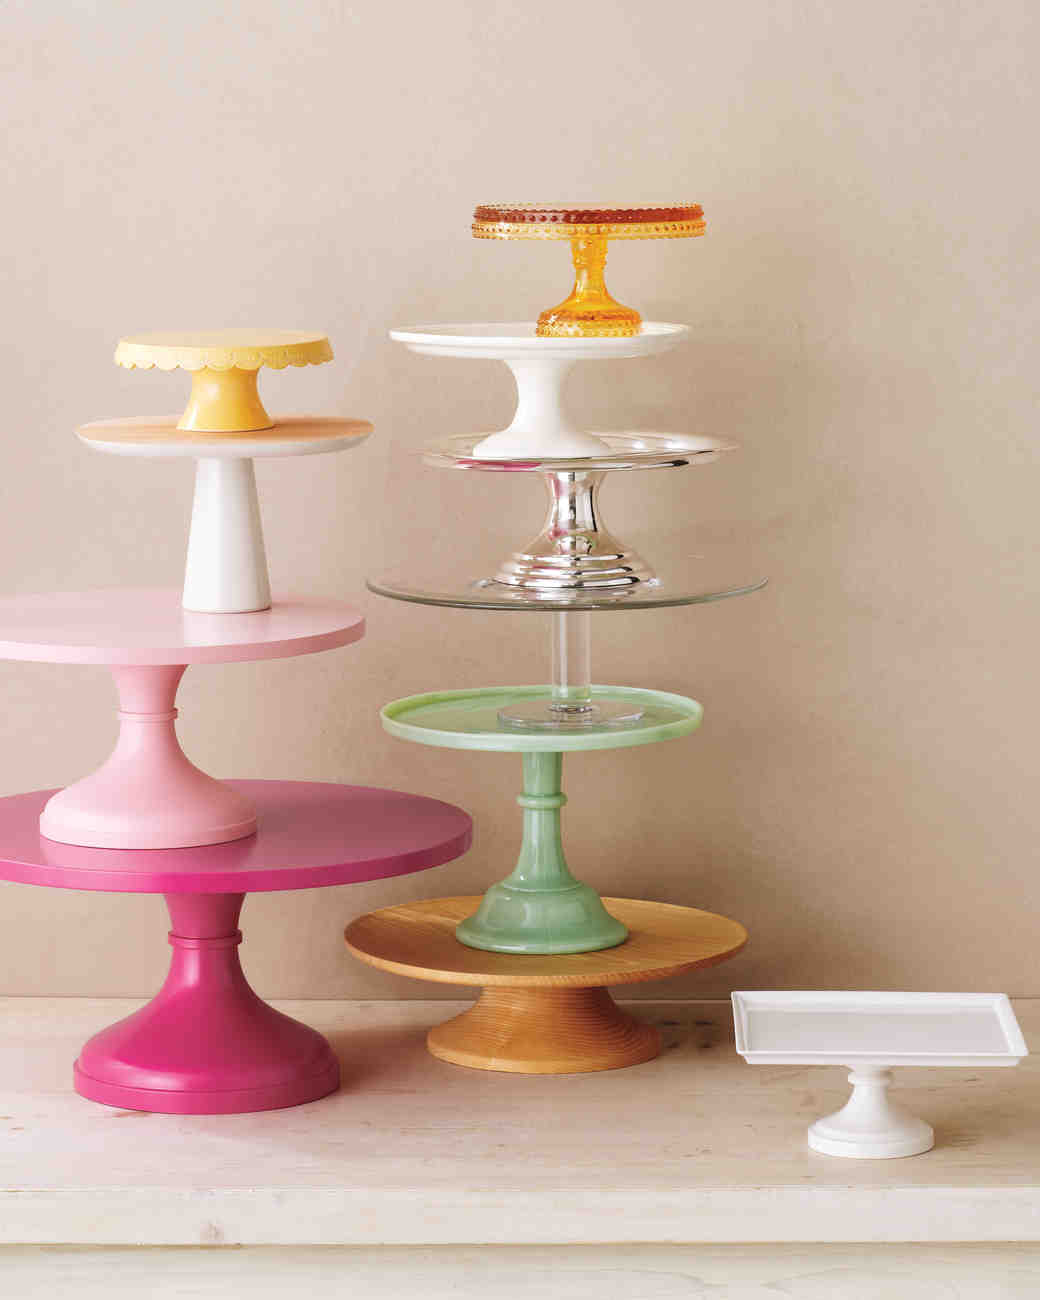 Complementing Cake Stands & Good Things for Cakes | Martha Stewart Weddings